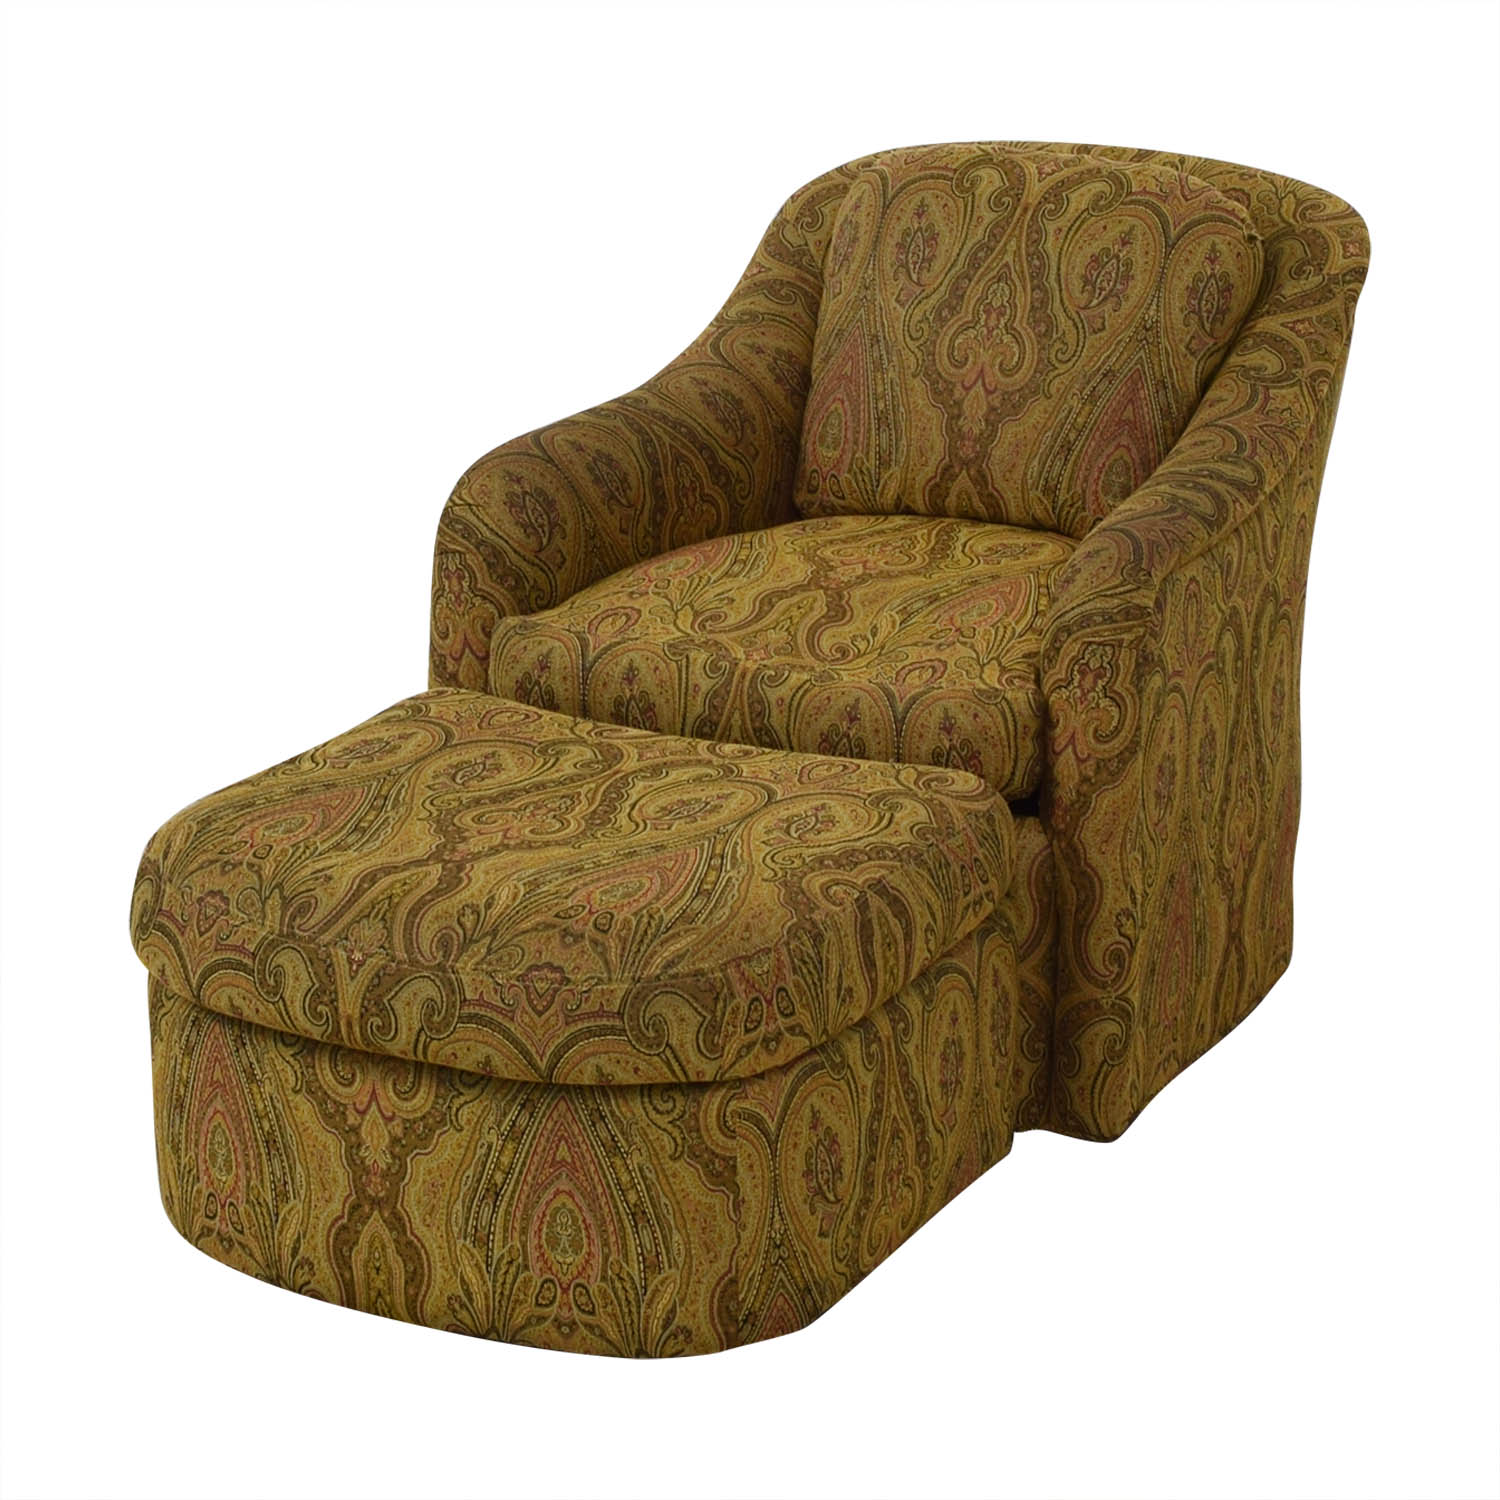 Swell 85 Off Pennsylvania House Pennsylvania House Swivel Chair And Ottoman Chairs Pabps2019 Chair Design Images Pabps2019Com